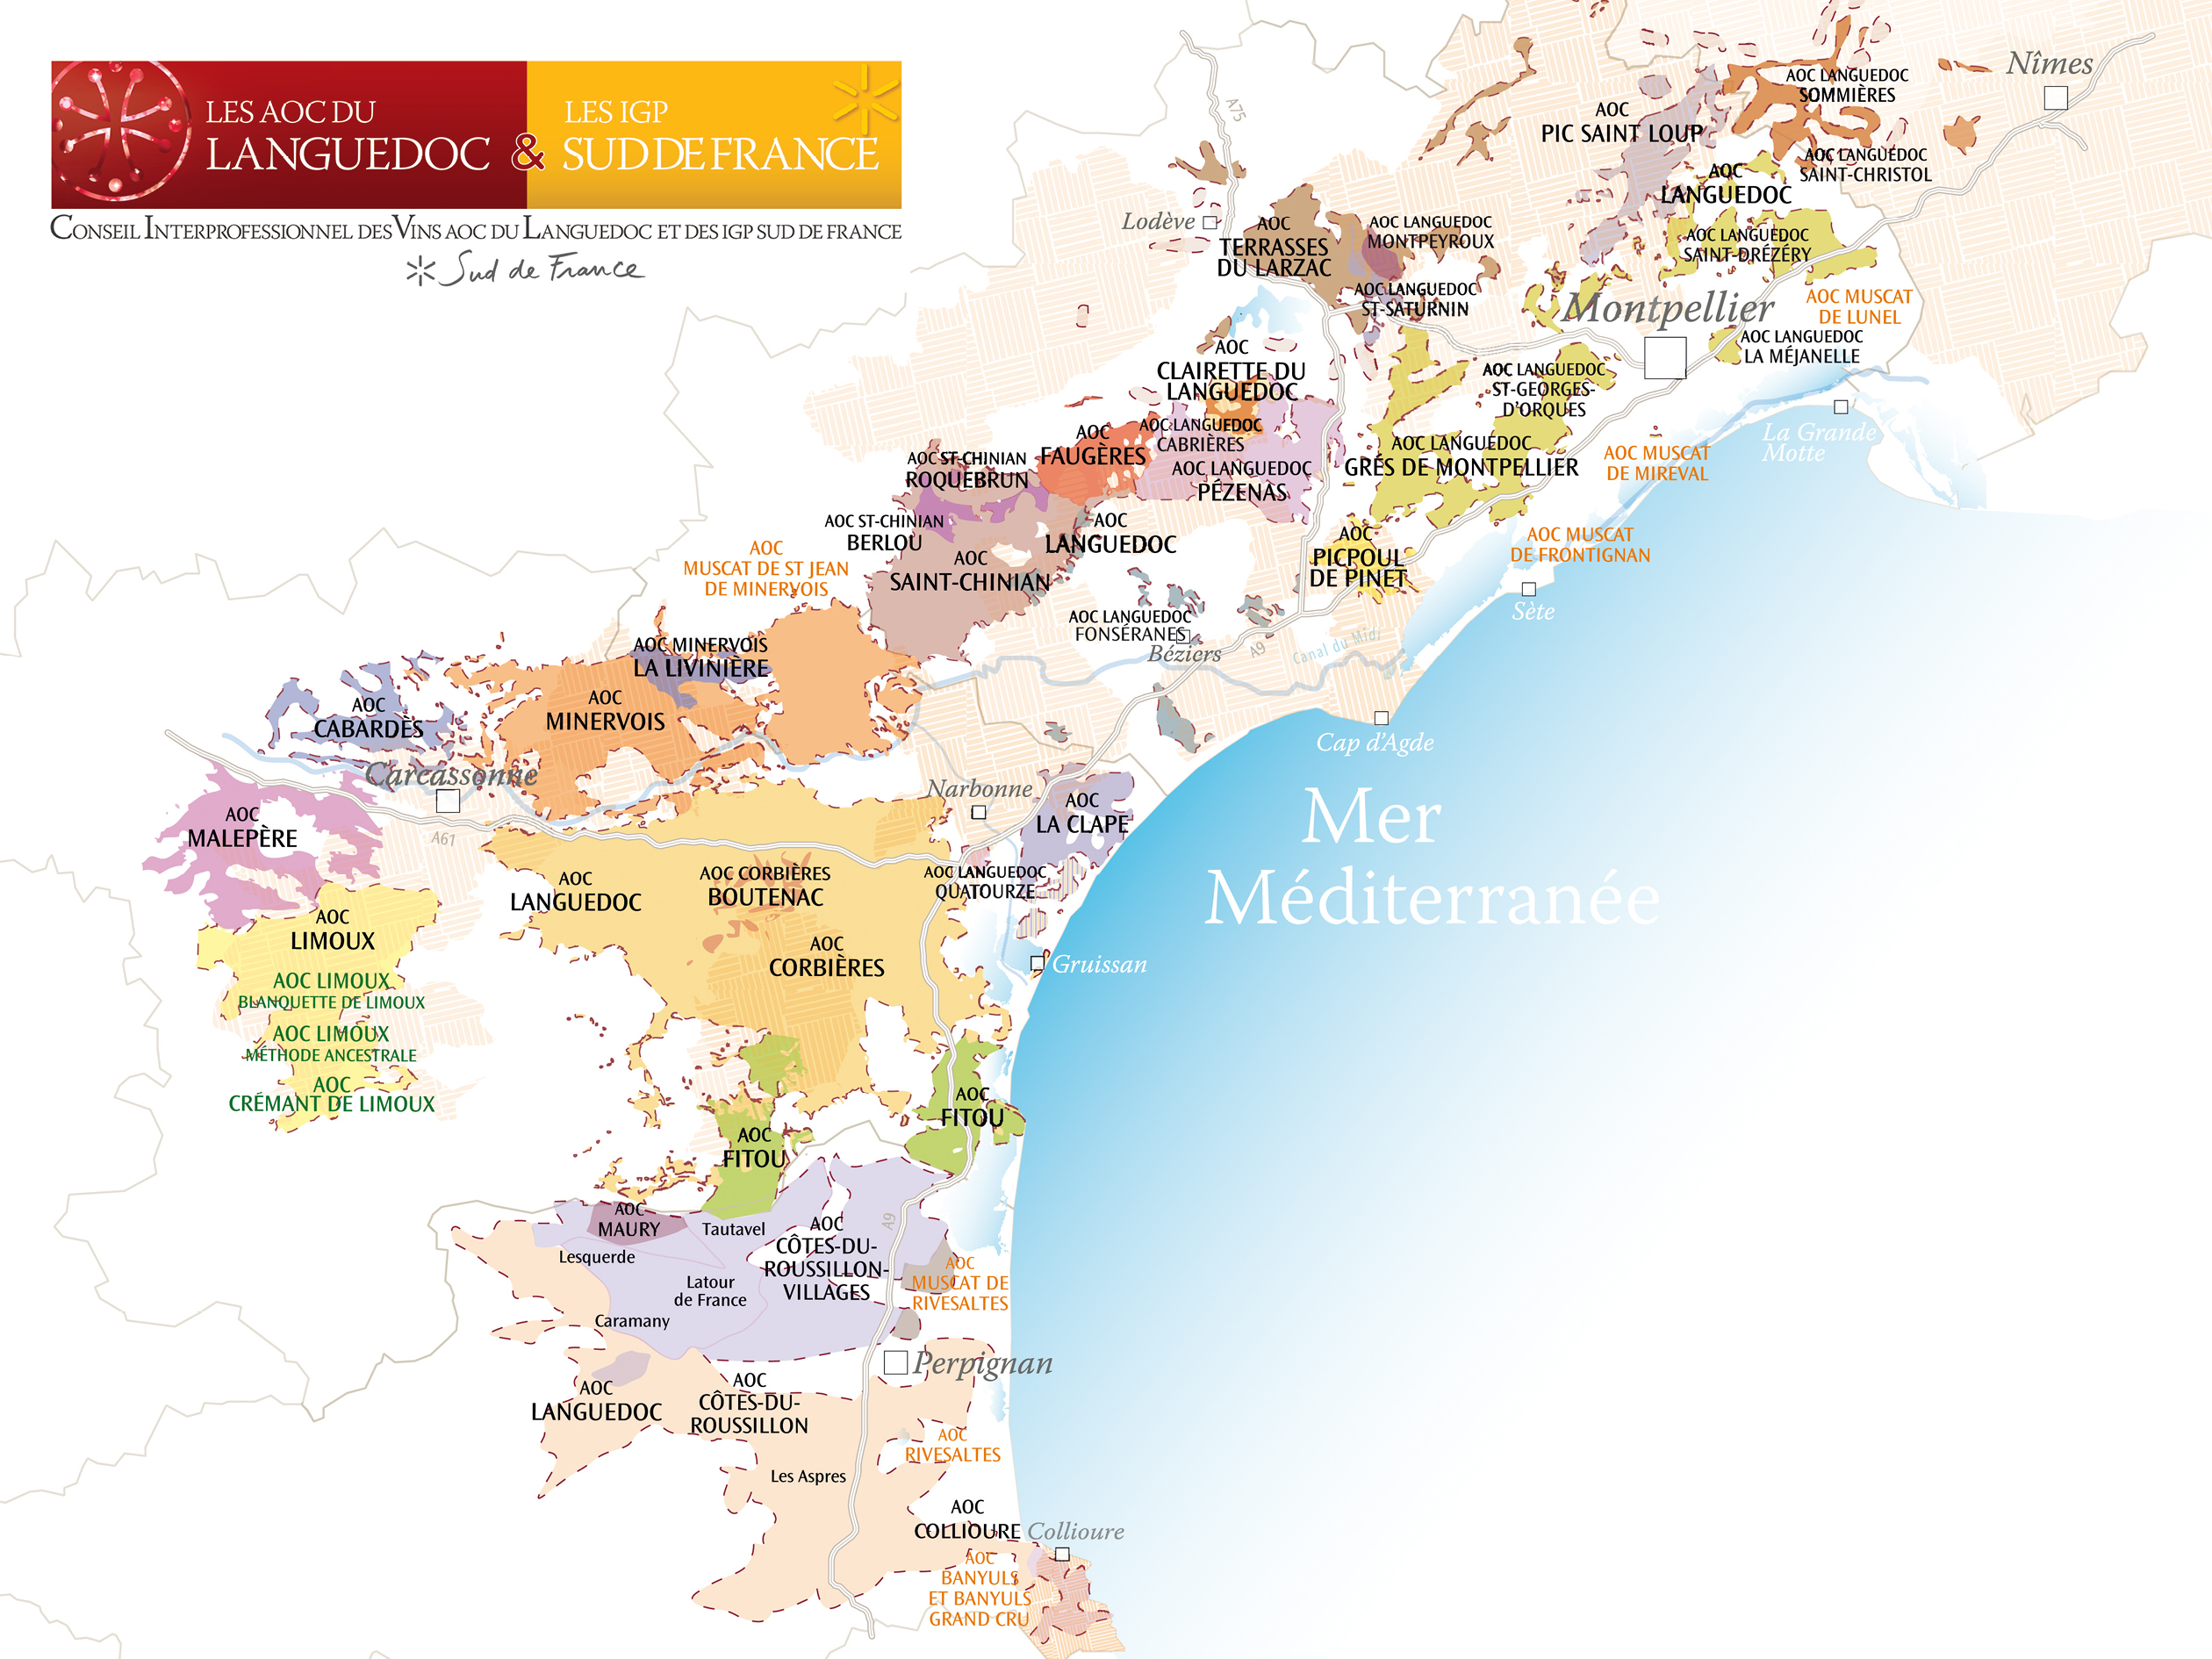 Guide to Languedoc for Wine Professionals | SevenFifty Daily